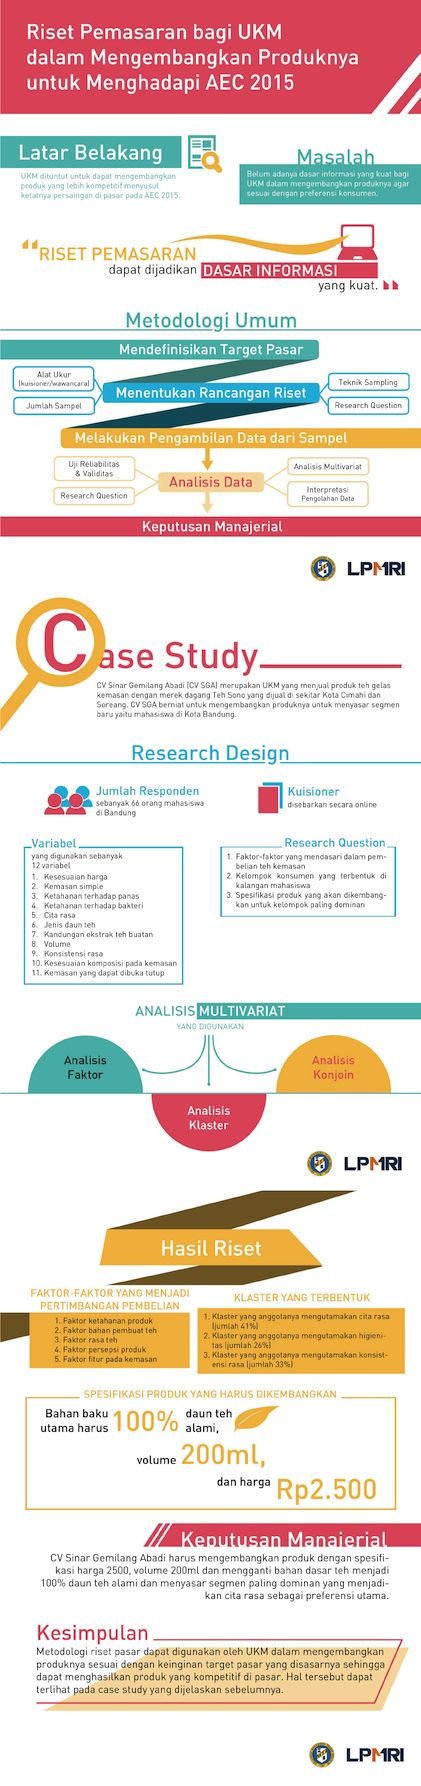 LPMRI Research Infographic Poster Design - MTI